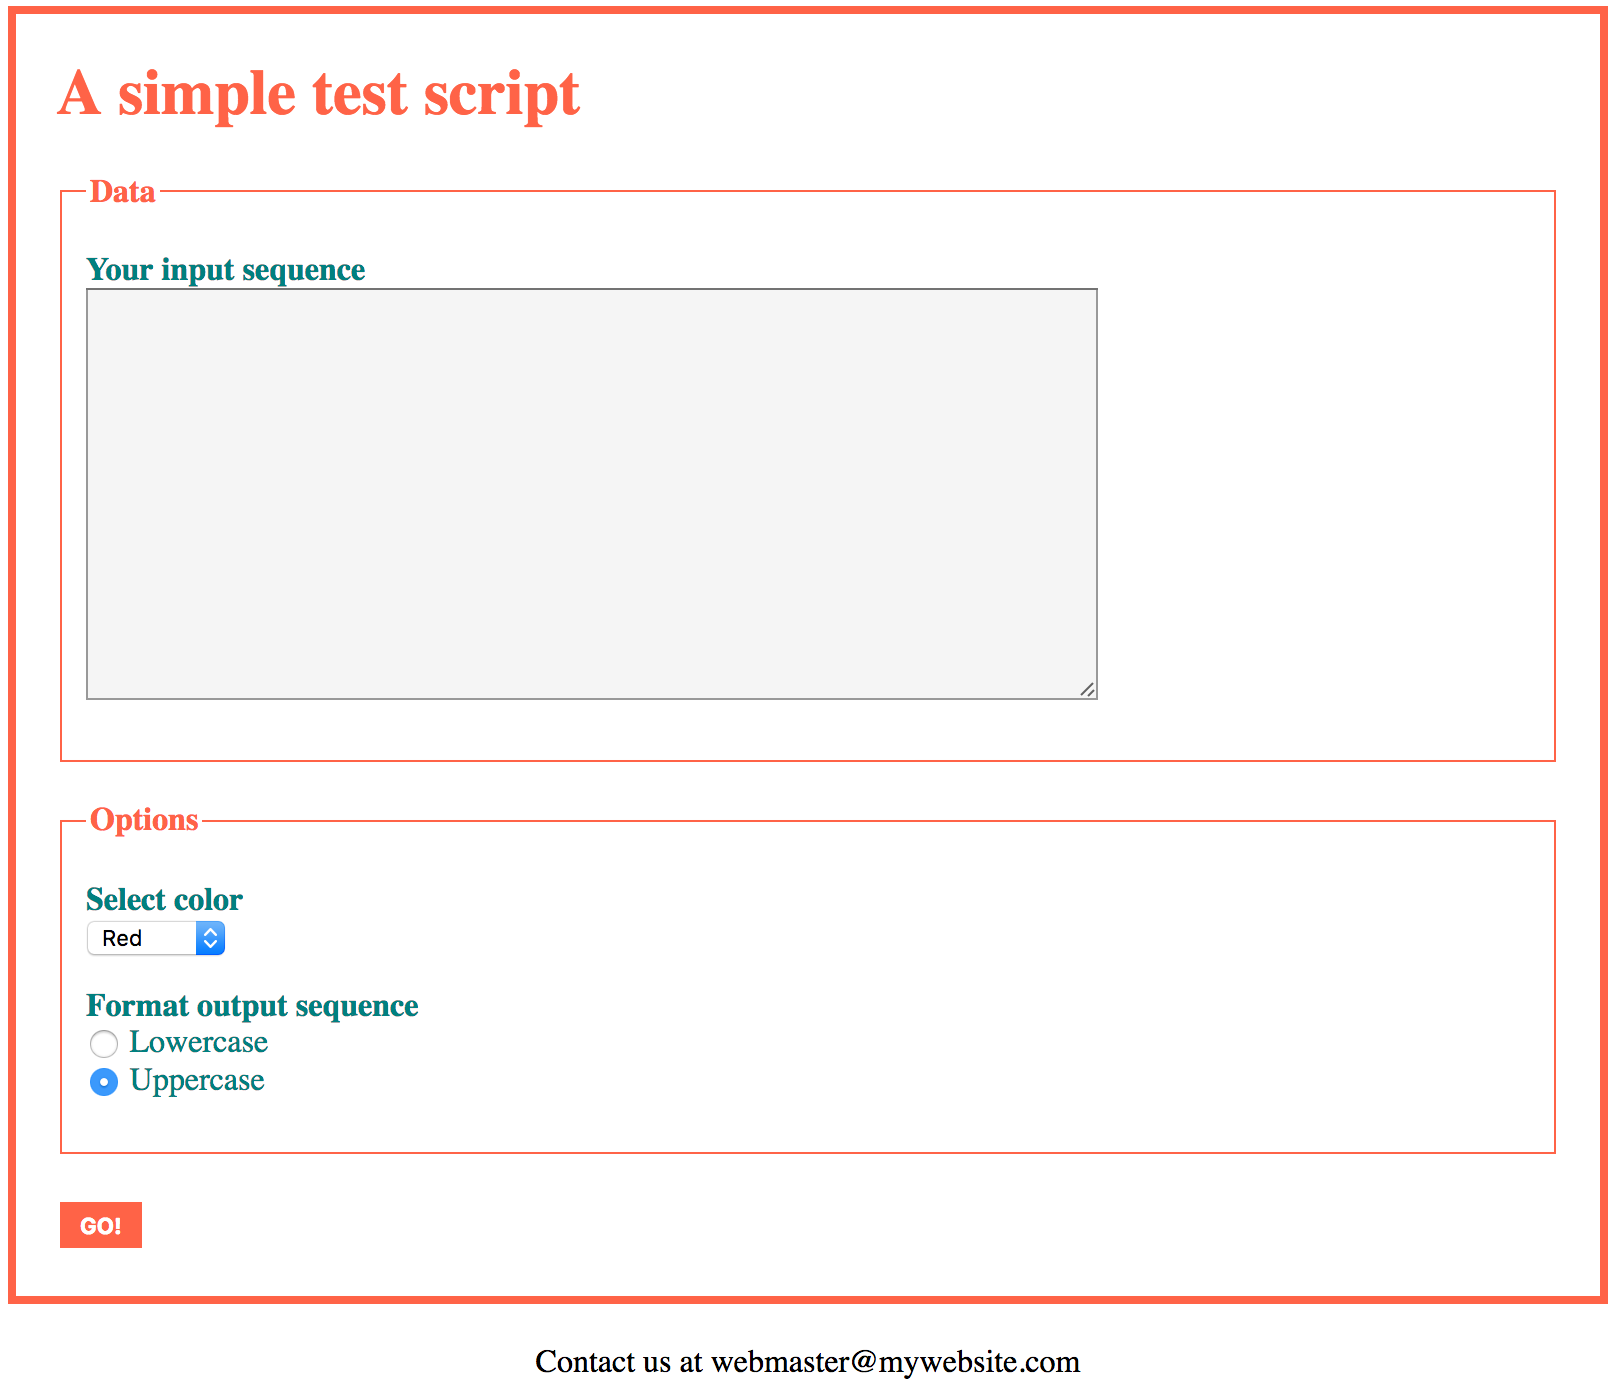 The web form of the sample script in this page